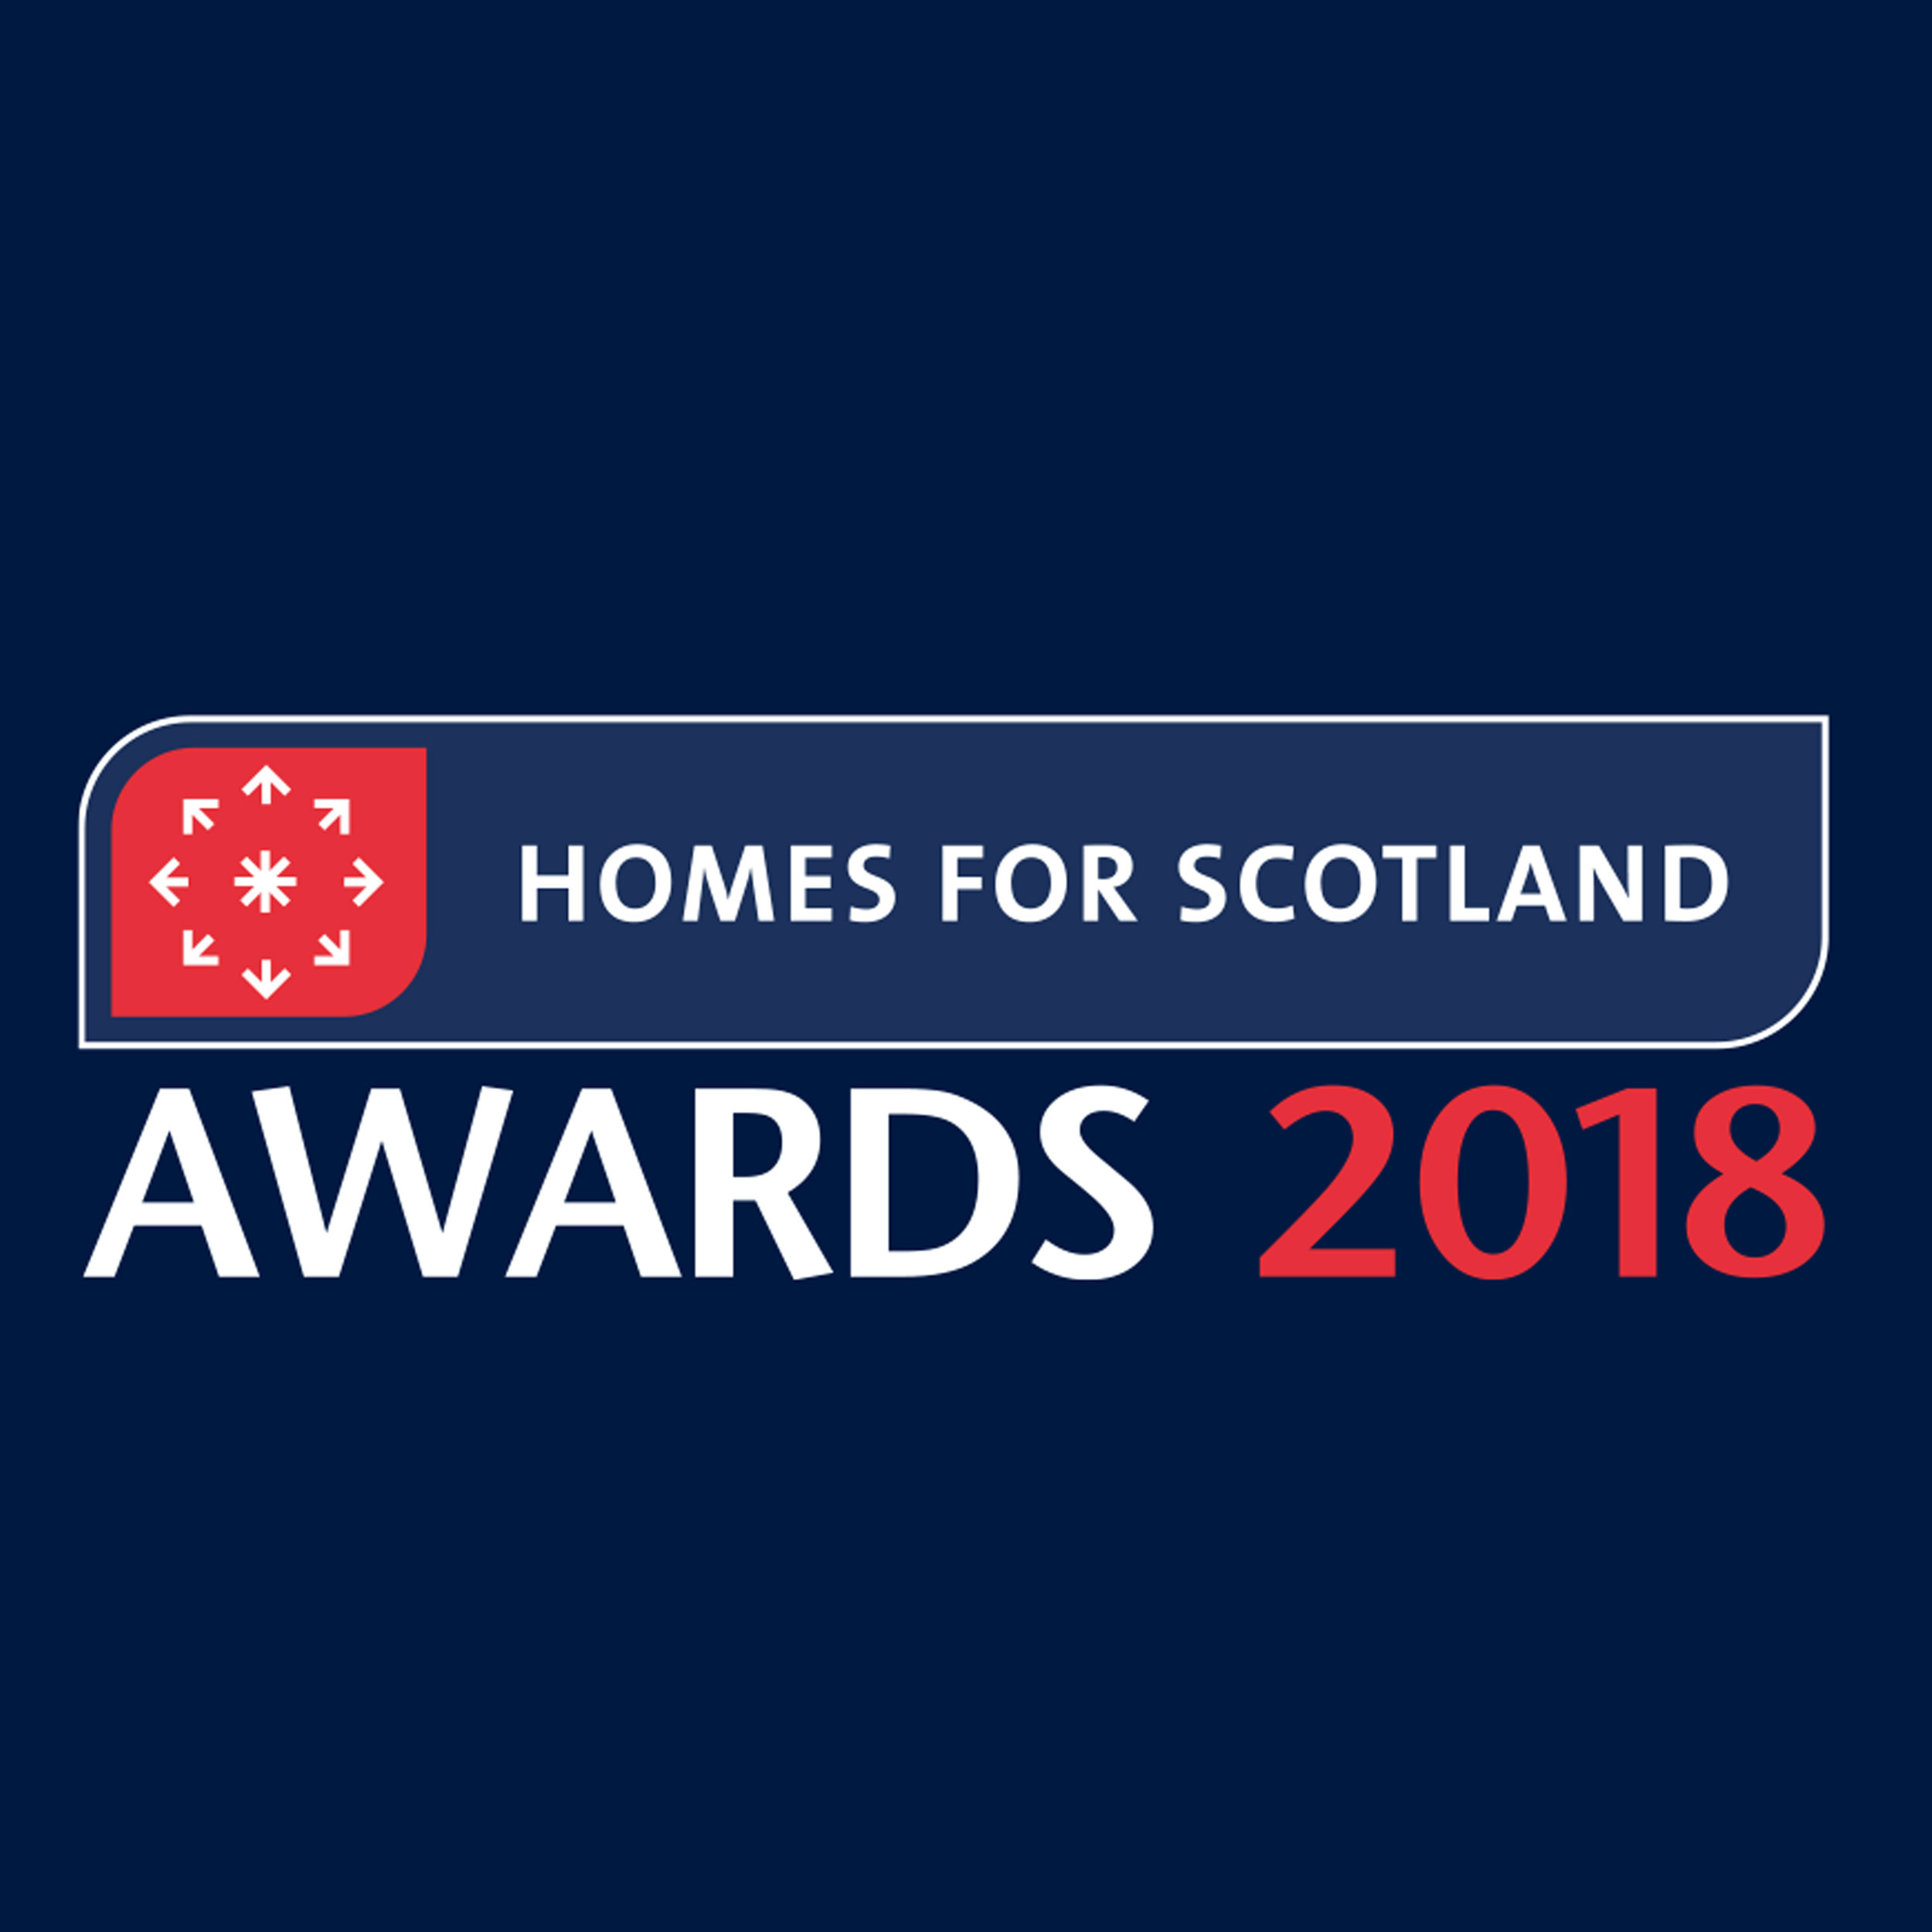 Homes for Scotland awards - Blog June / 2018   Kings Road, Dunbar announced as winner of Small Private development of the year at the Homes for Scotland awards 2018.